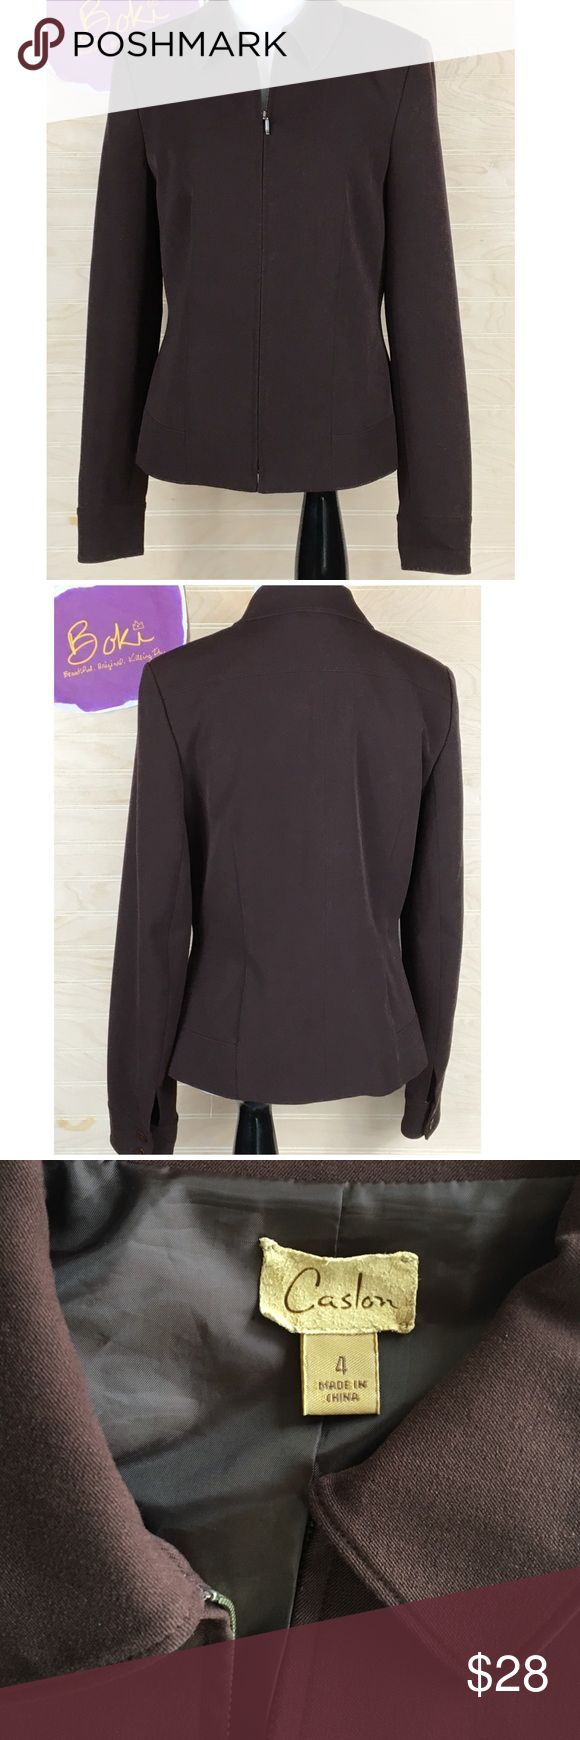 Nordstrom Caslon Women's Full-zip Jacket, Brown 4 Flawlessly chic, this EUC Caslon full-zip jacket from Nordstrom's is a staple for every woman's fall wardrobe. Rich chocolate brown pairs perfectly with all your neutrals or deep fall colors. Pair with fall's IT color, deep red for an amazing lux look. No stains. Size 4, please see Measurements in photos. No trades, offers welcome. Caslon Jackets & Coats Blazers